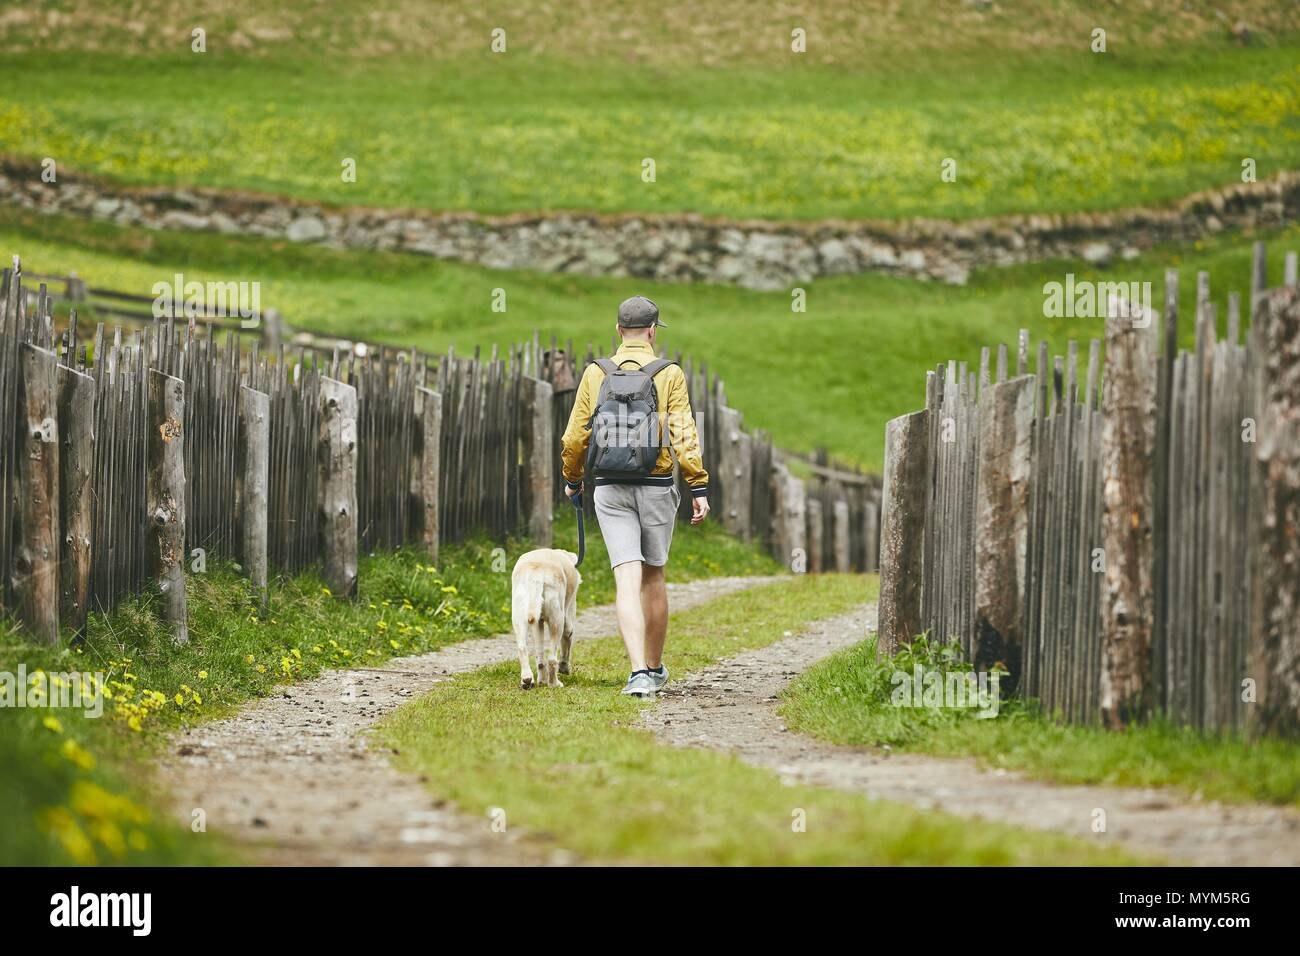 Tourist with dog in countryside. Young man walking with labrador retriever on dirt road. - Stock Image